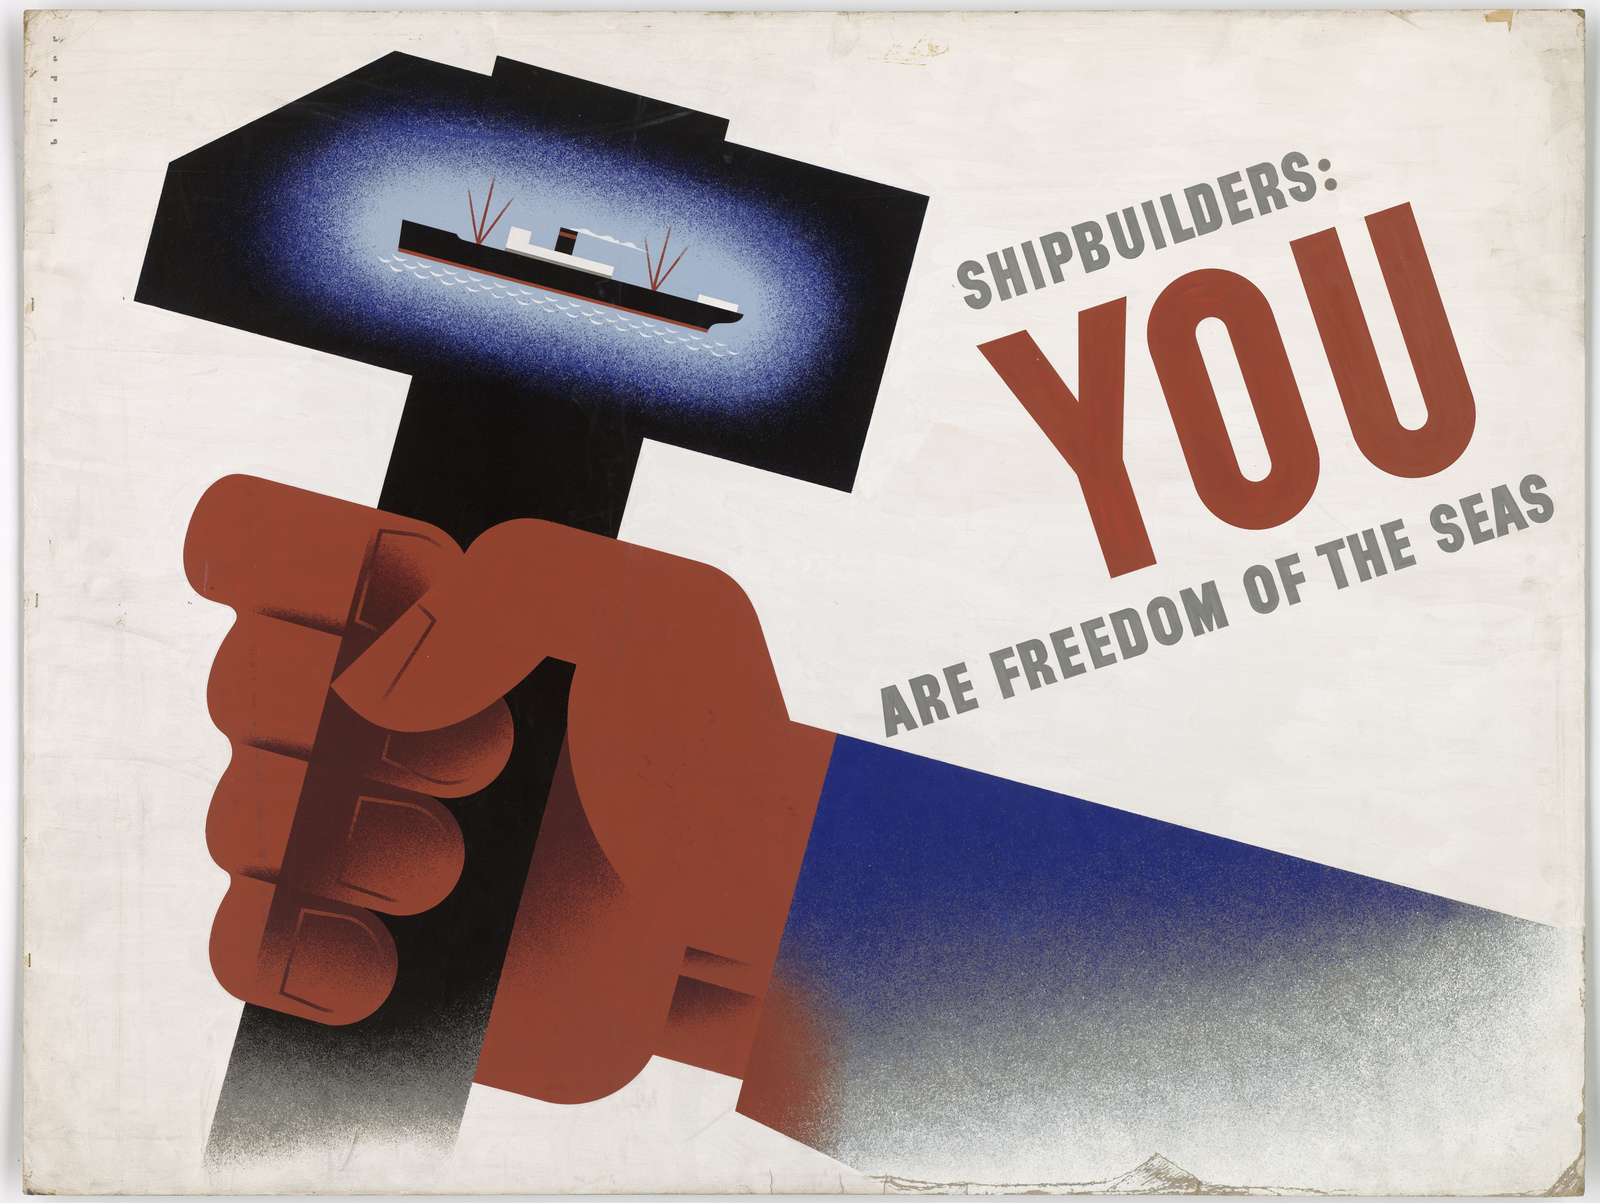 Shipbuilders: YOU are freedom of the seas